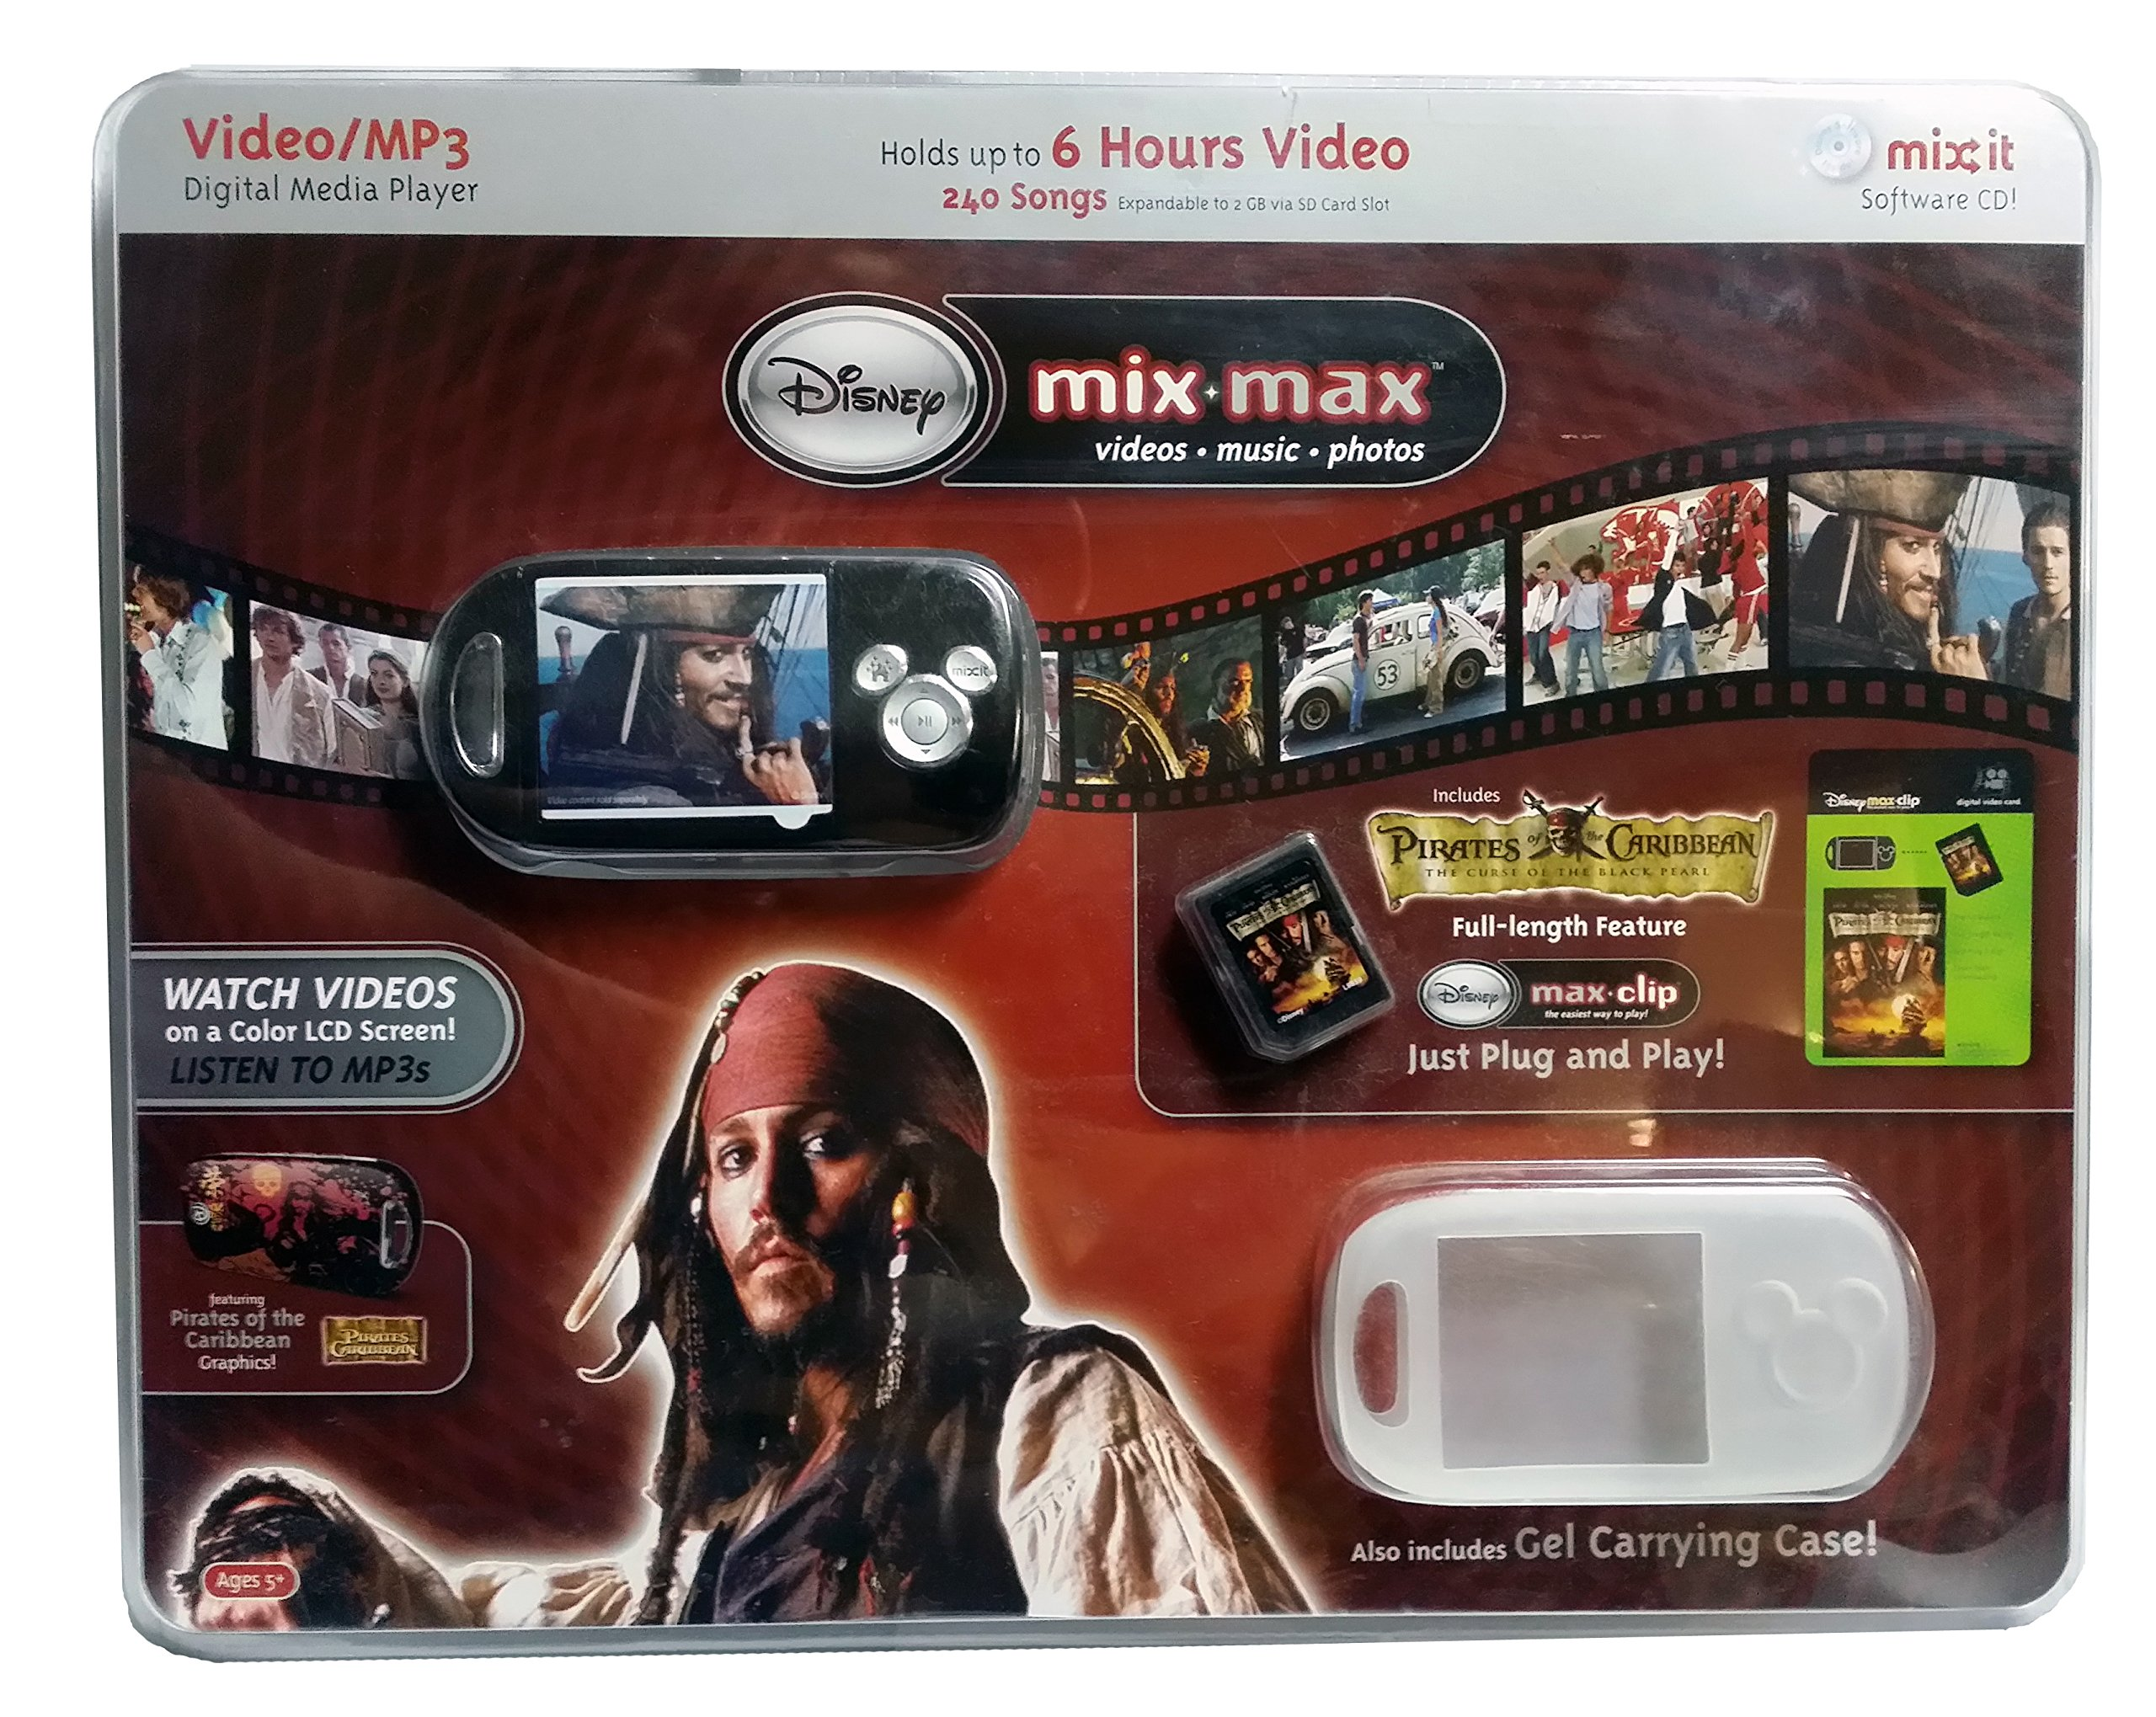 Disney Mix-Max Video/MP3 Digital Media Player Featuring Pirates of the Caribbean Graphics!